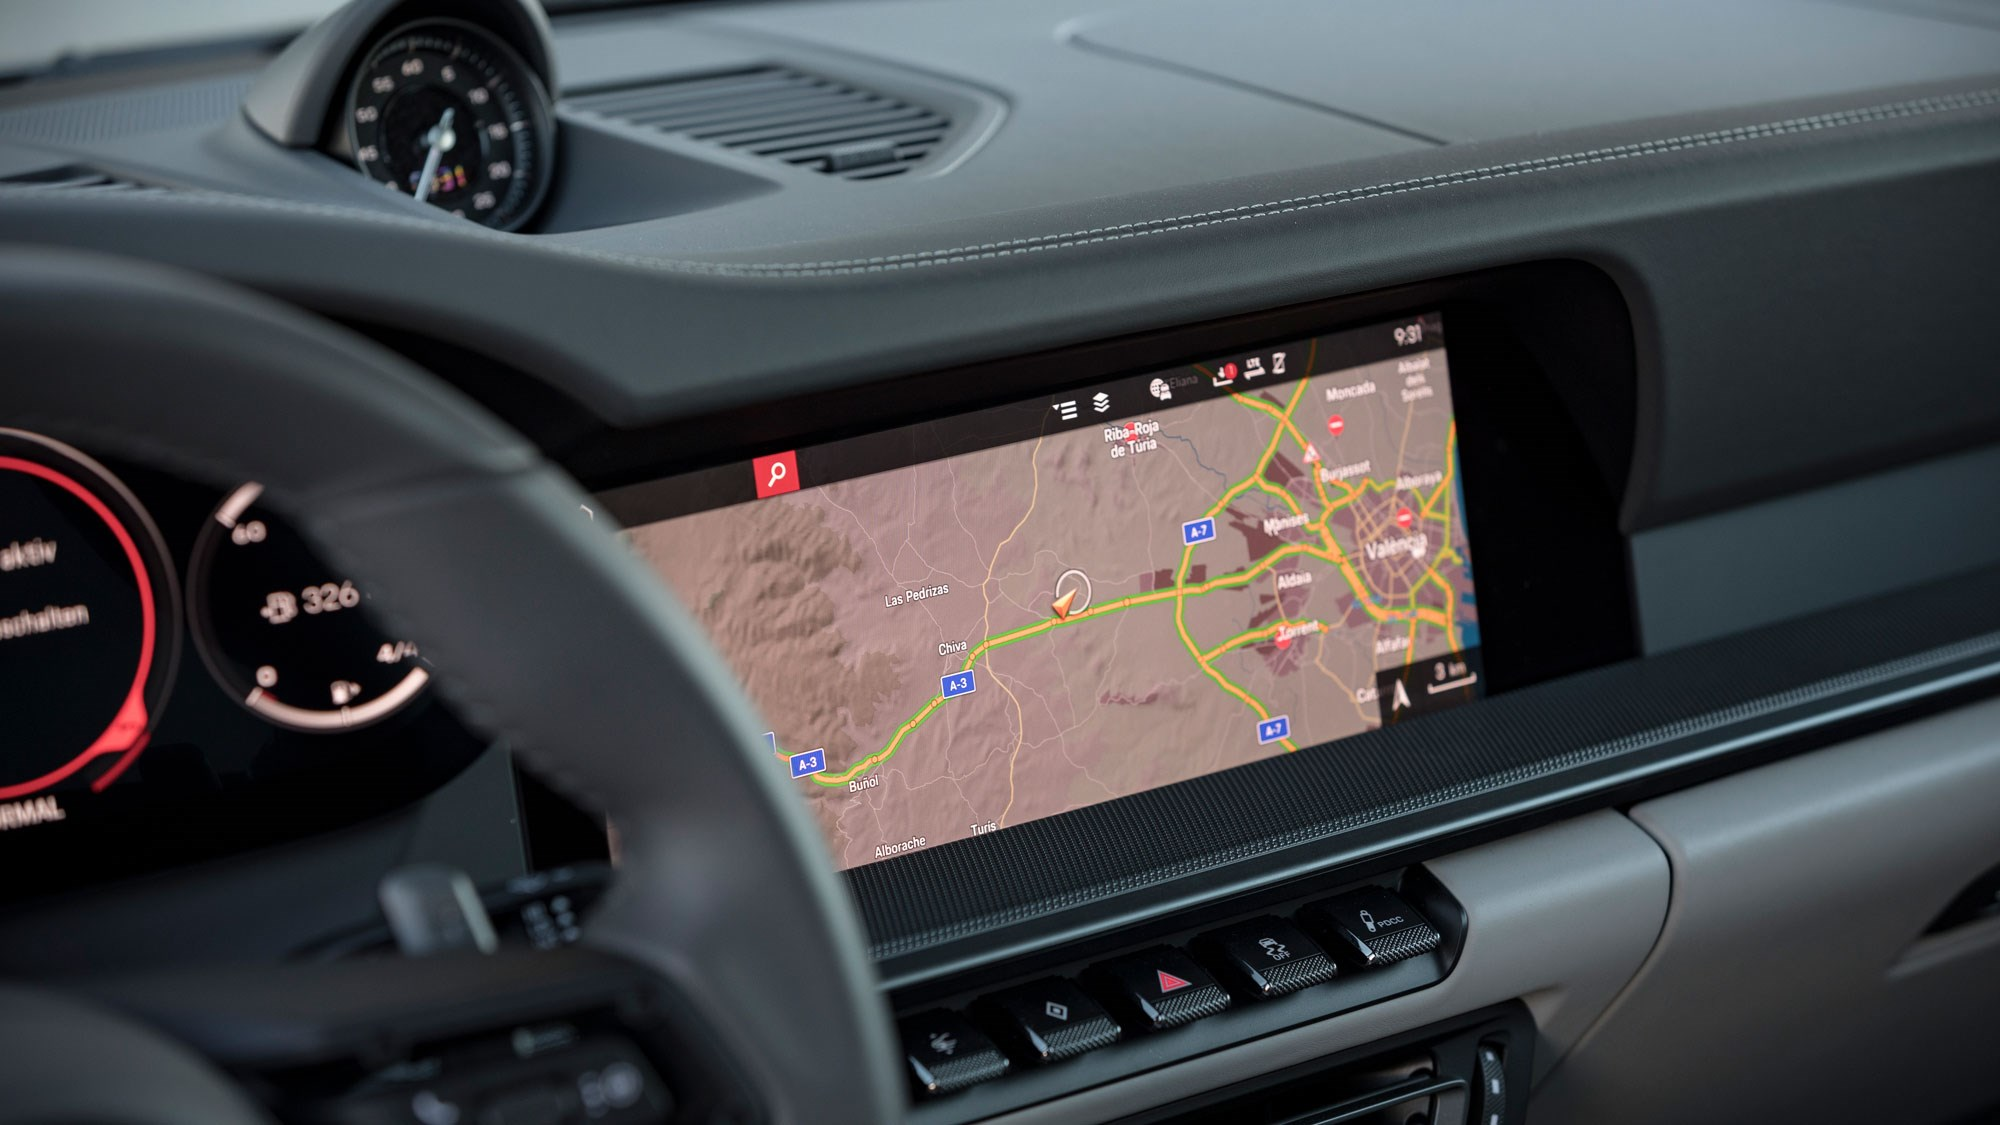 Sat-nav is overhauled for 2019